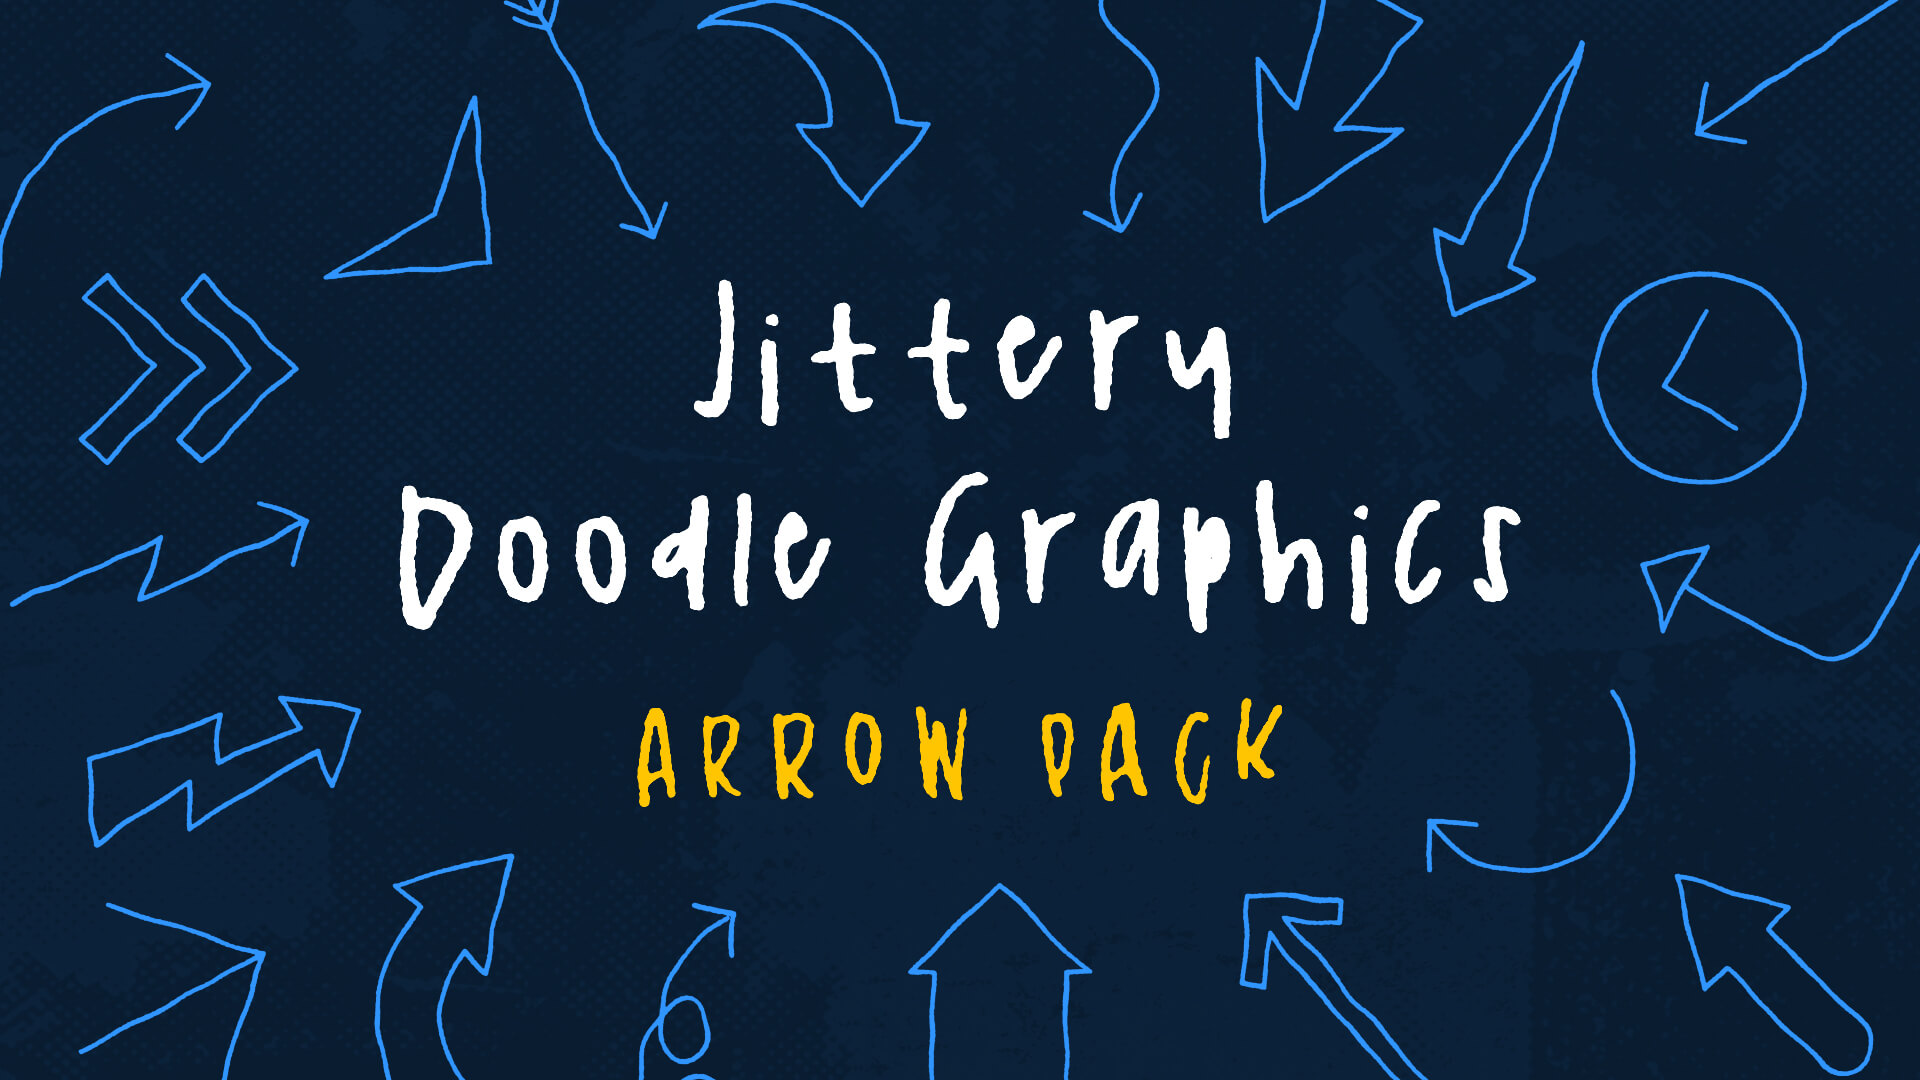 Jittery Doodle Graphics - Arrows Pack - Animation FX Thumbnail